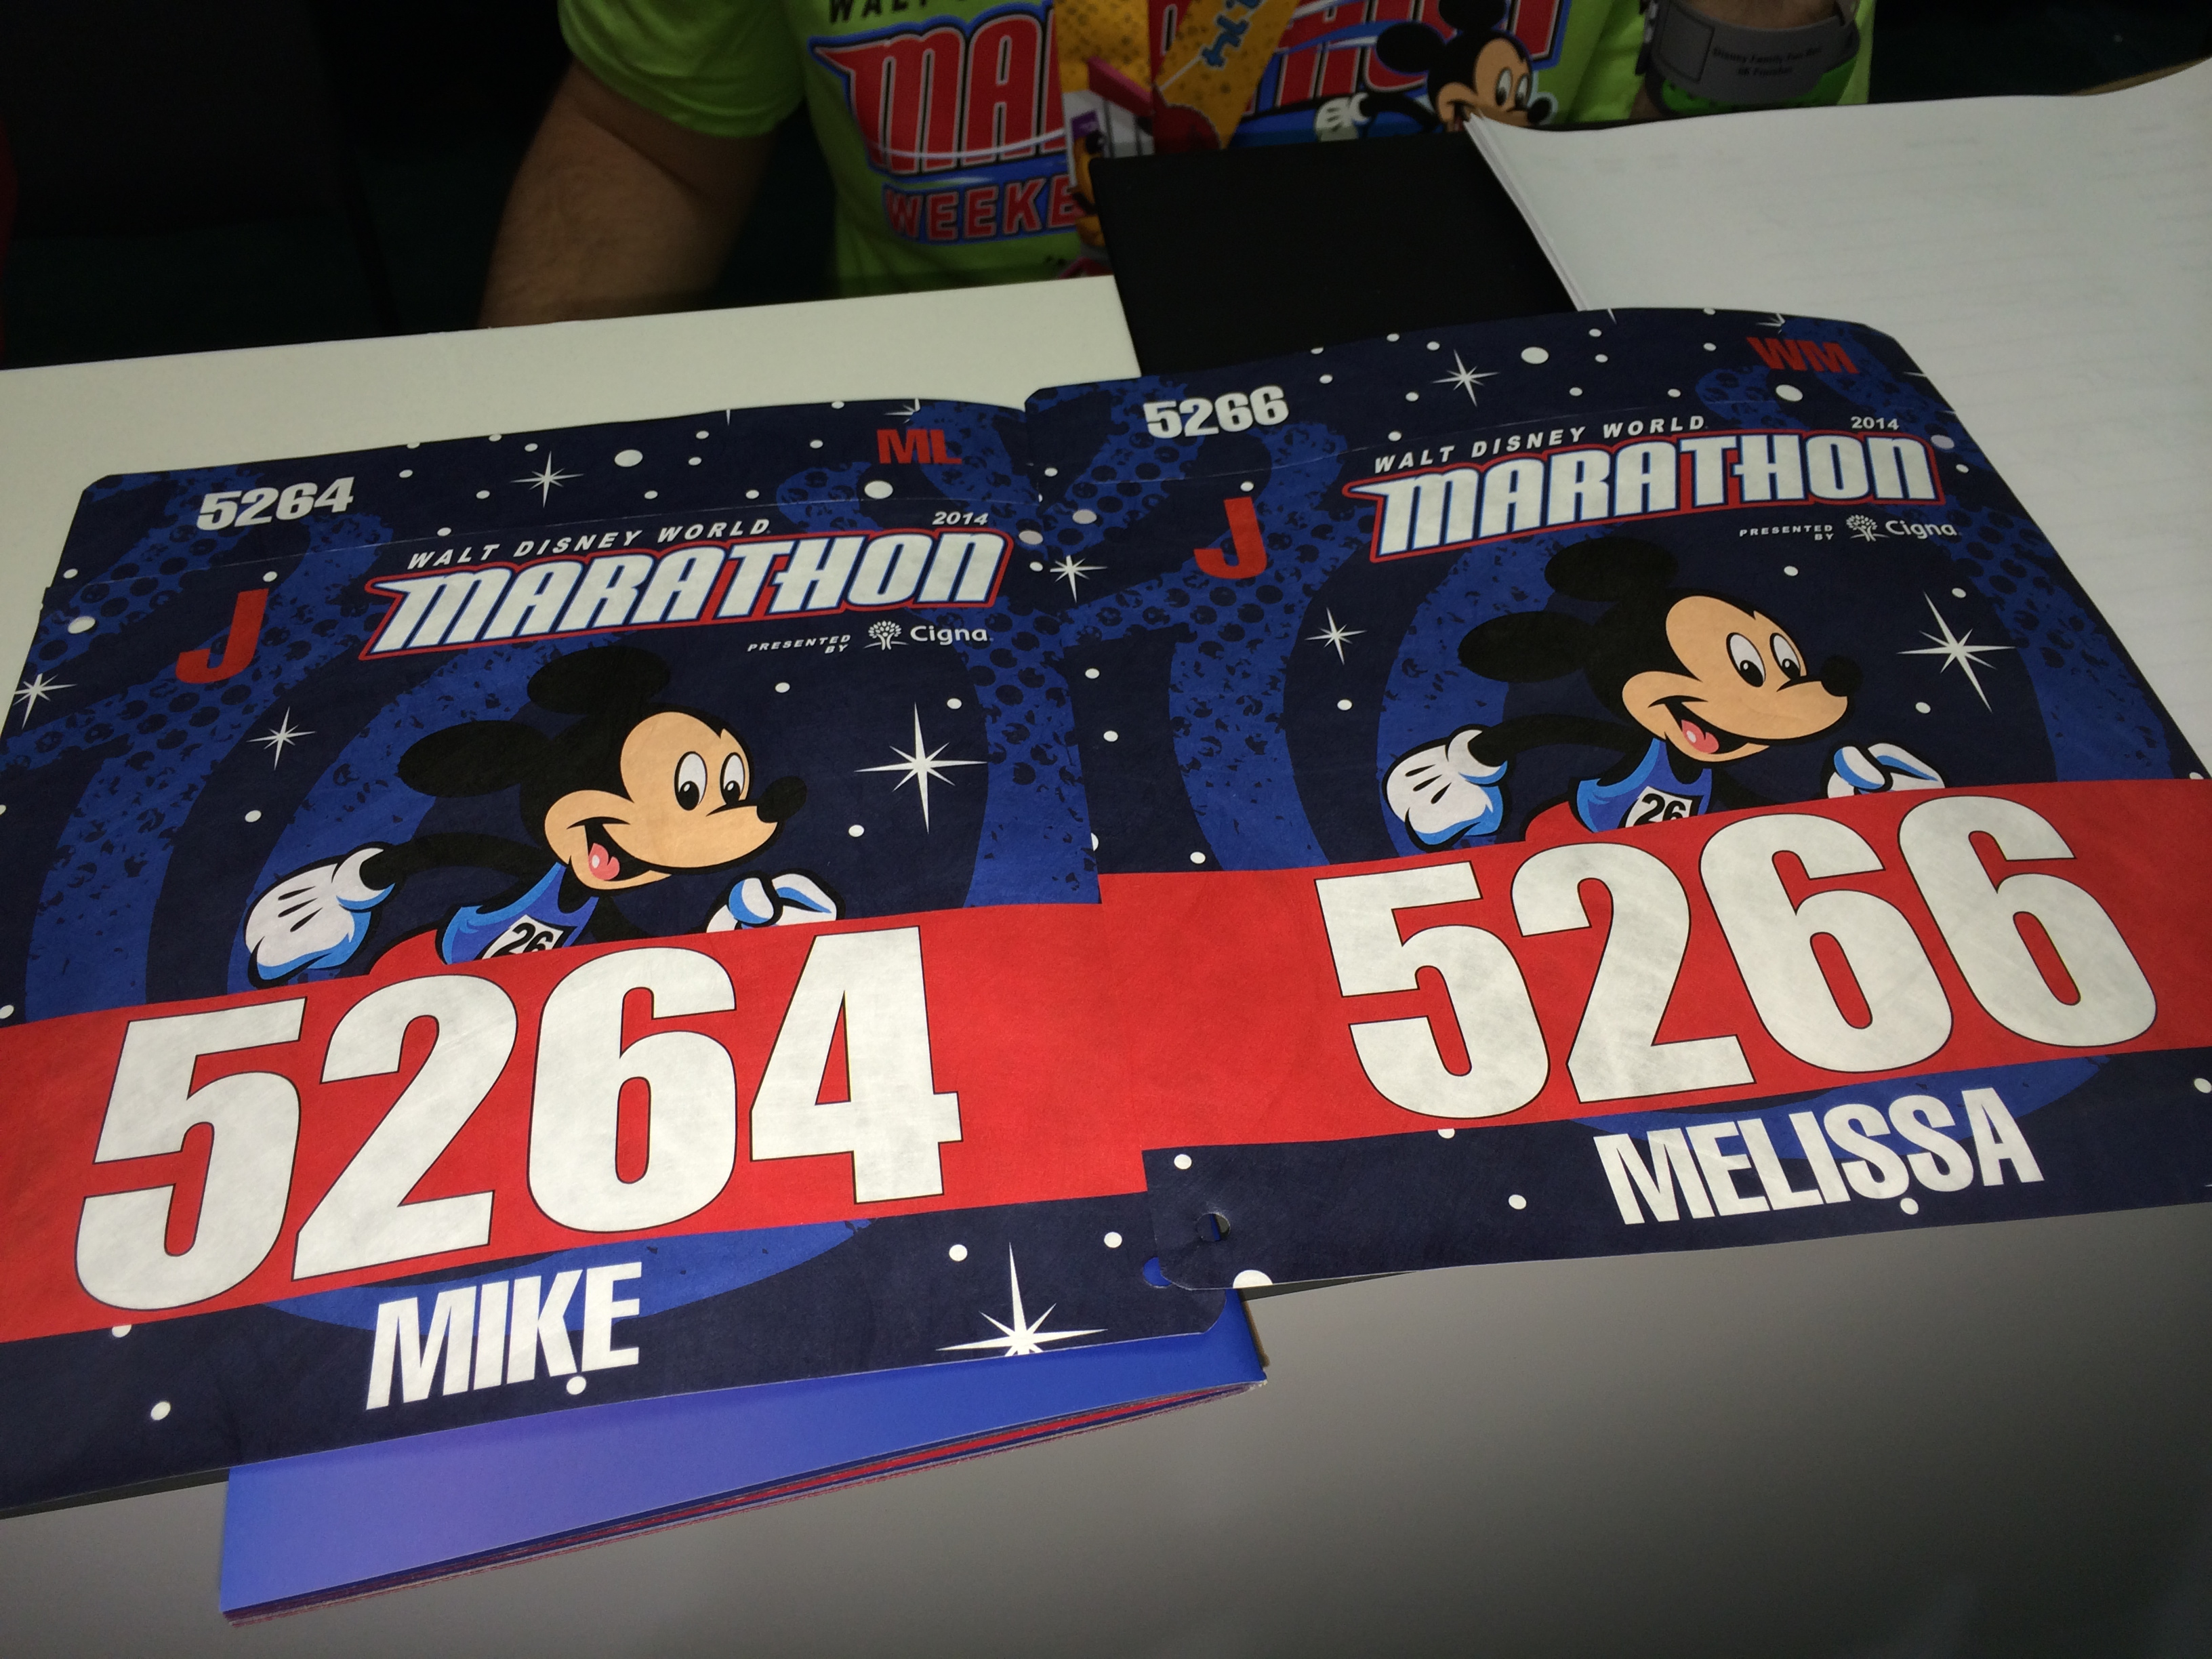 Top 10 runDisney Runcation mistakes